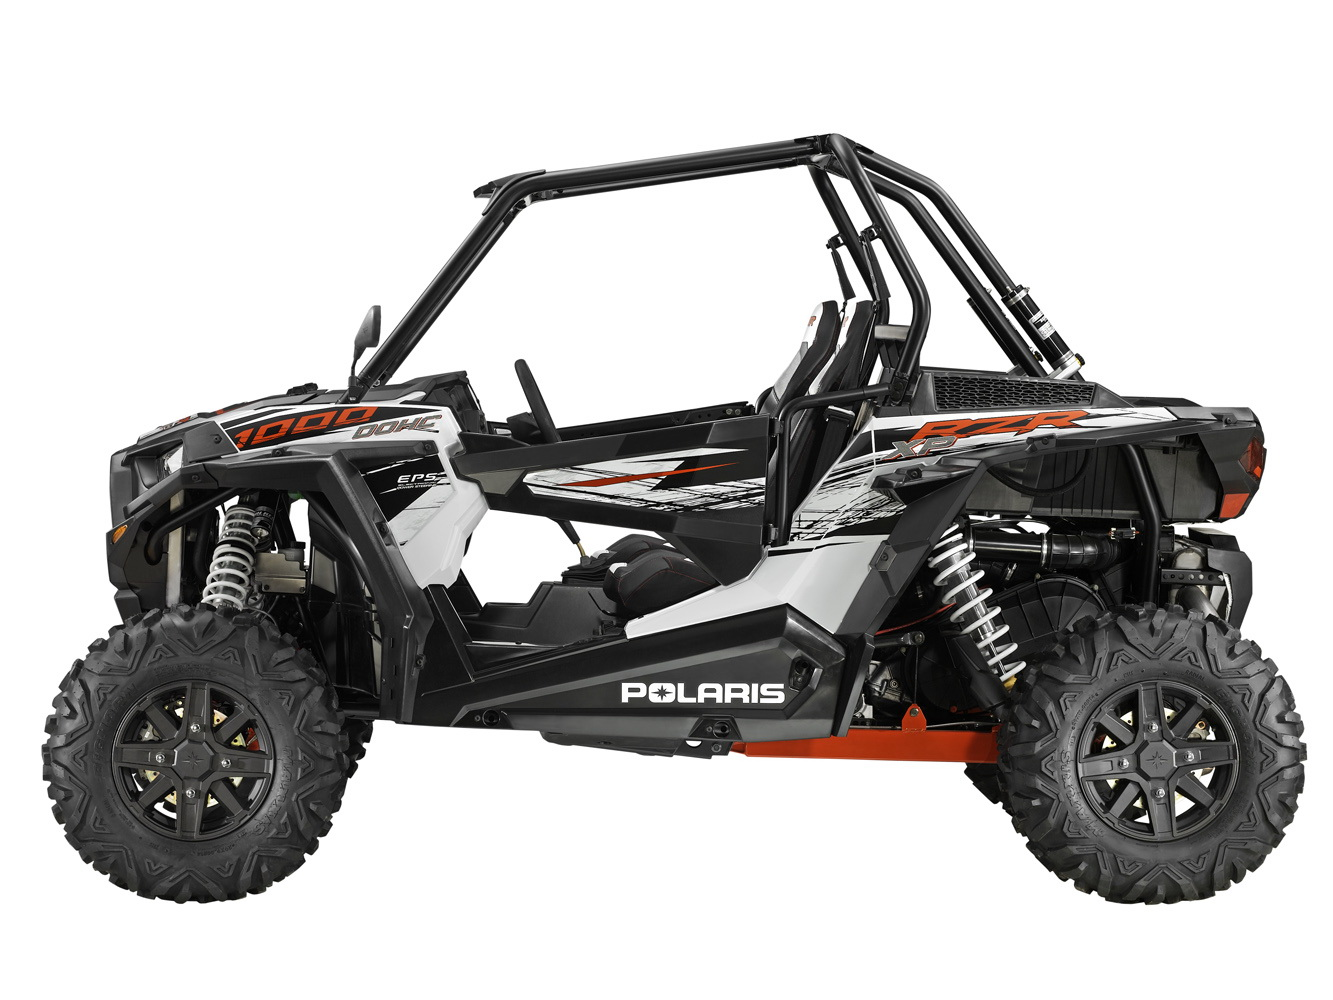 ATV RZR 900 EPS POLARIS